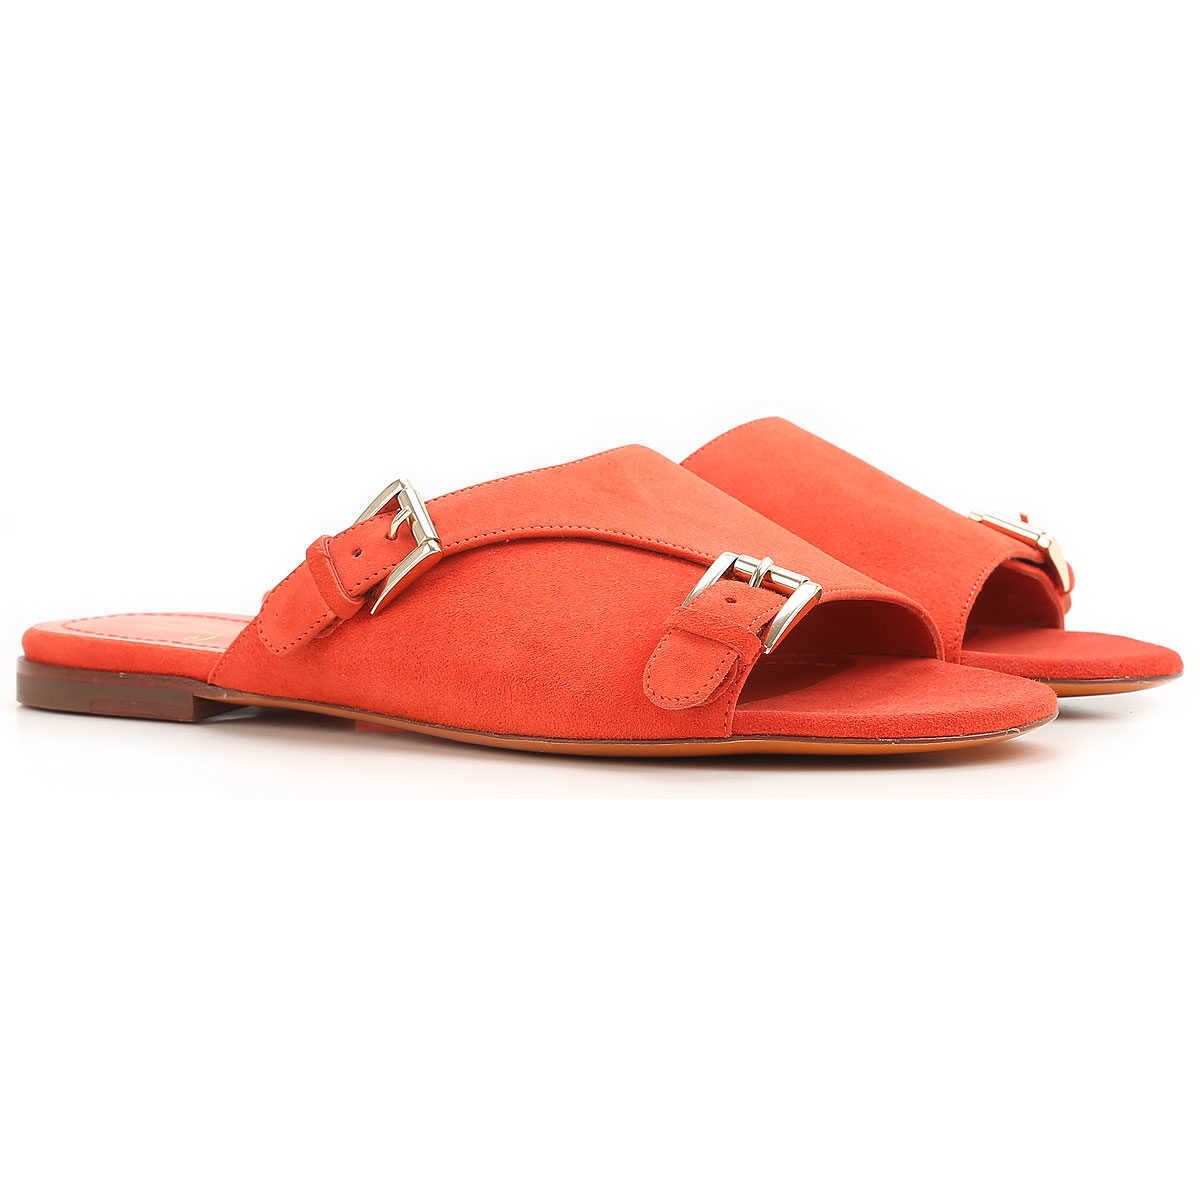 Santoni Sandals for Women On Sale in Outlet Rose Collection - GOOFASH